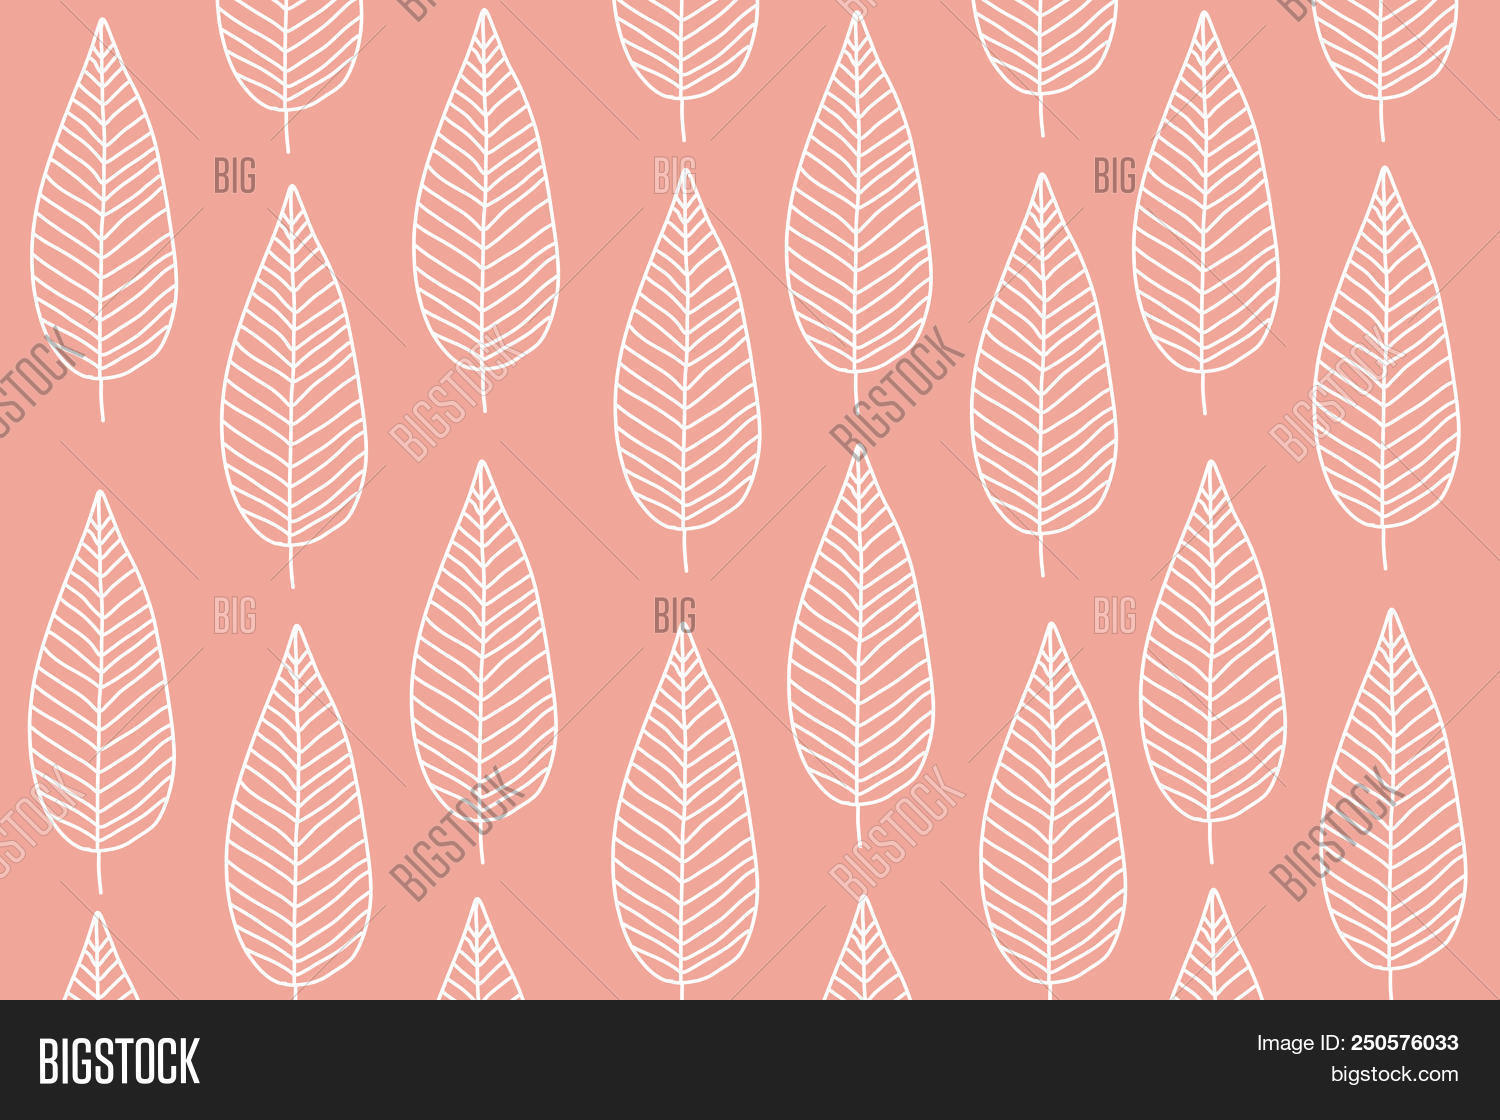 Cute White Tree Or Leaf Pattern On Pastel Pink Background Sweet Wallpaper And